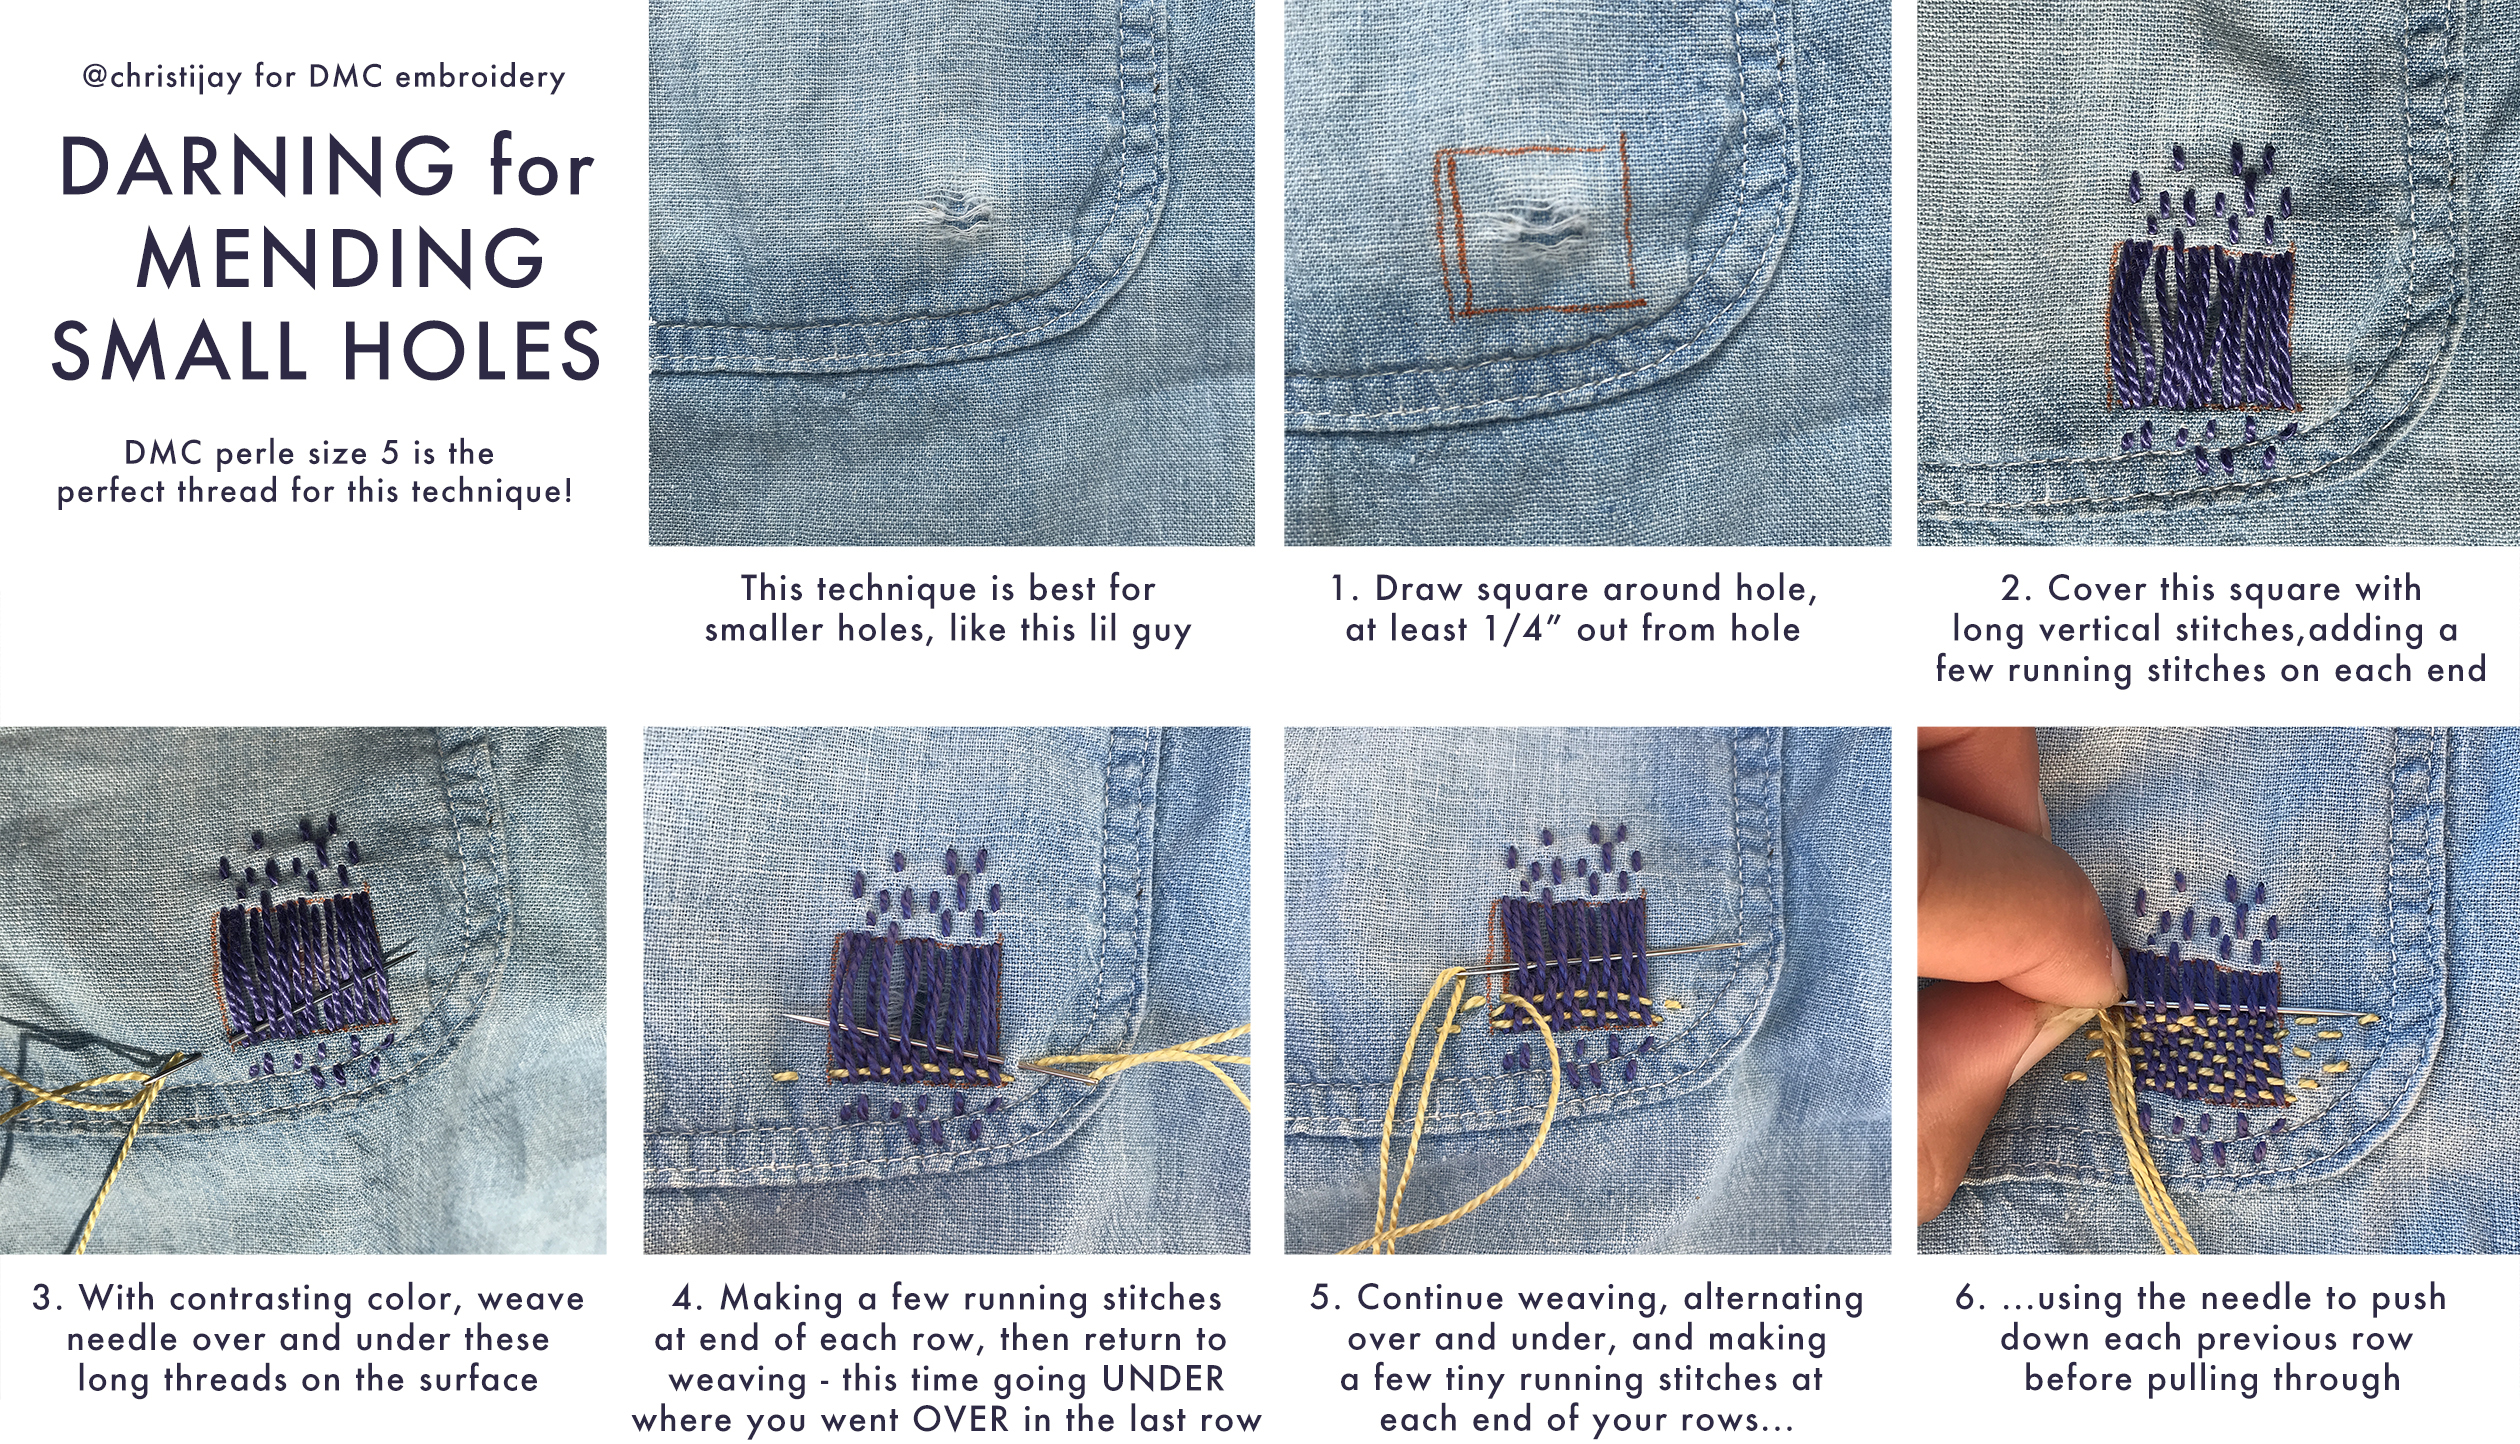 Darning for Mending Small Holes